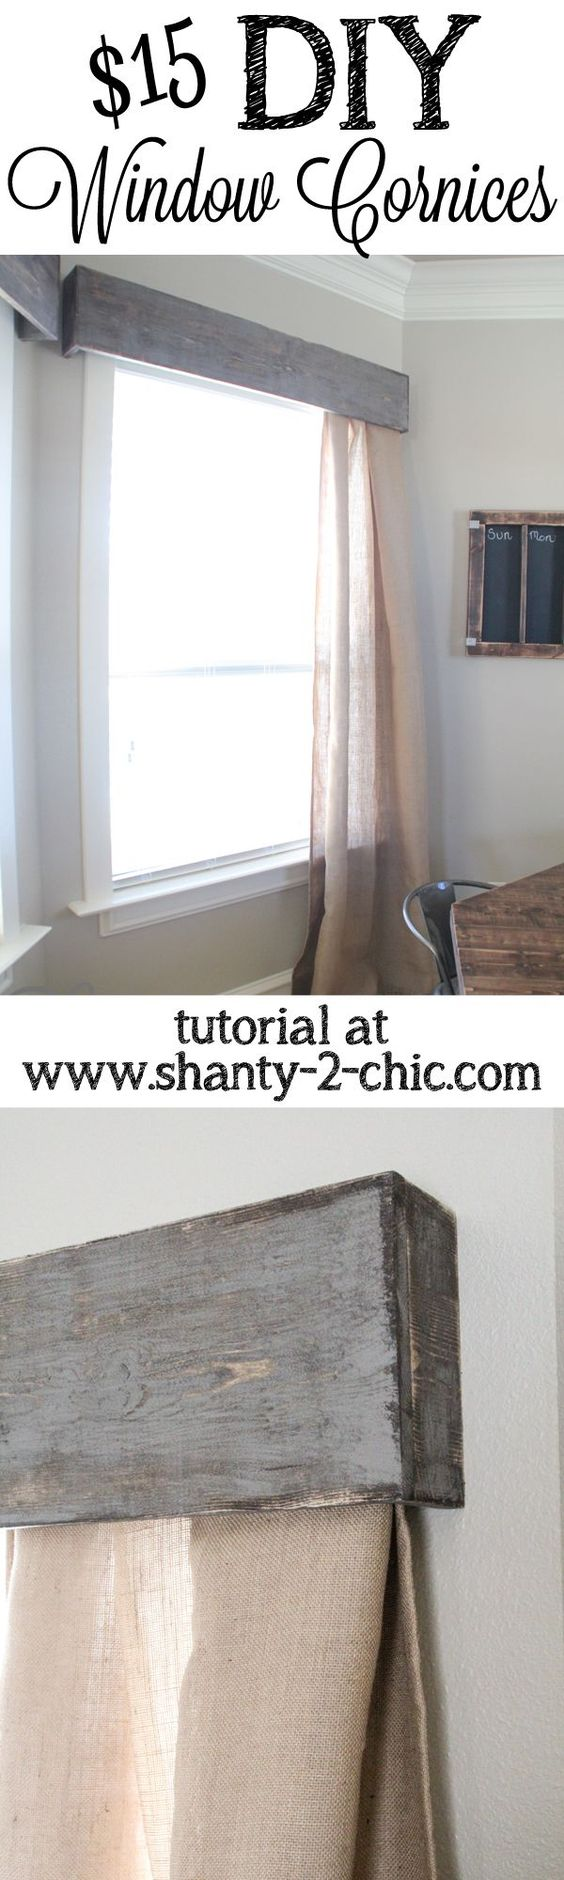 DIY Wooden Window Cornice. Easy and inexpensive way to dress up any window! I want to do this to every window in my house!: